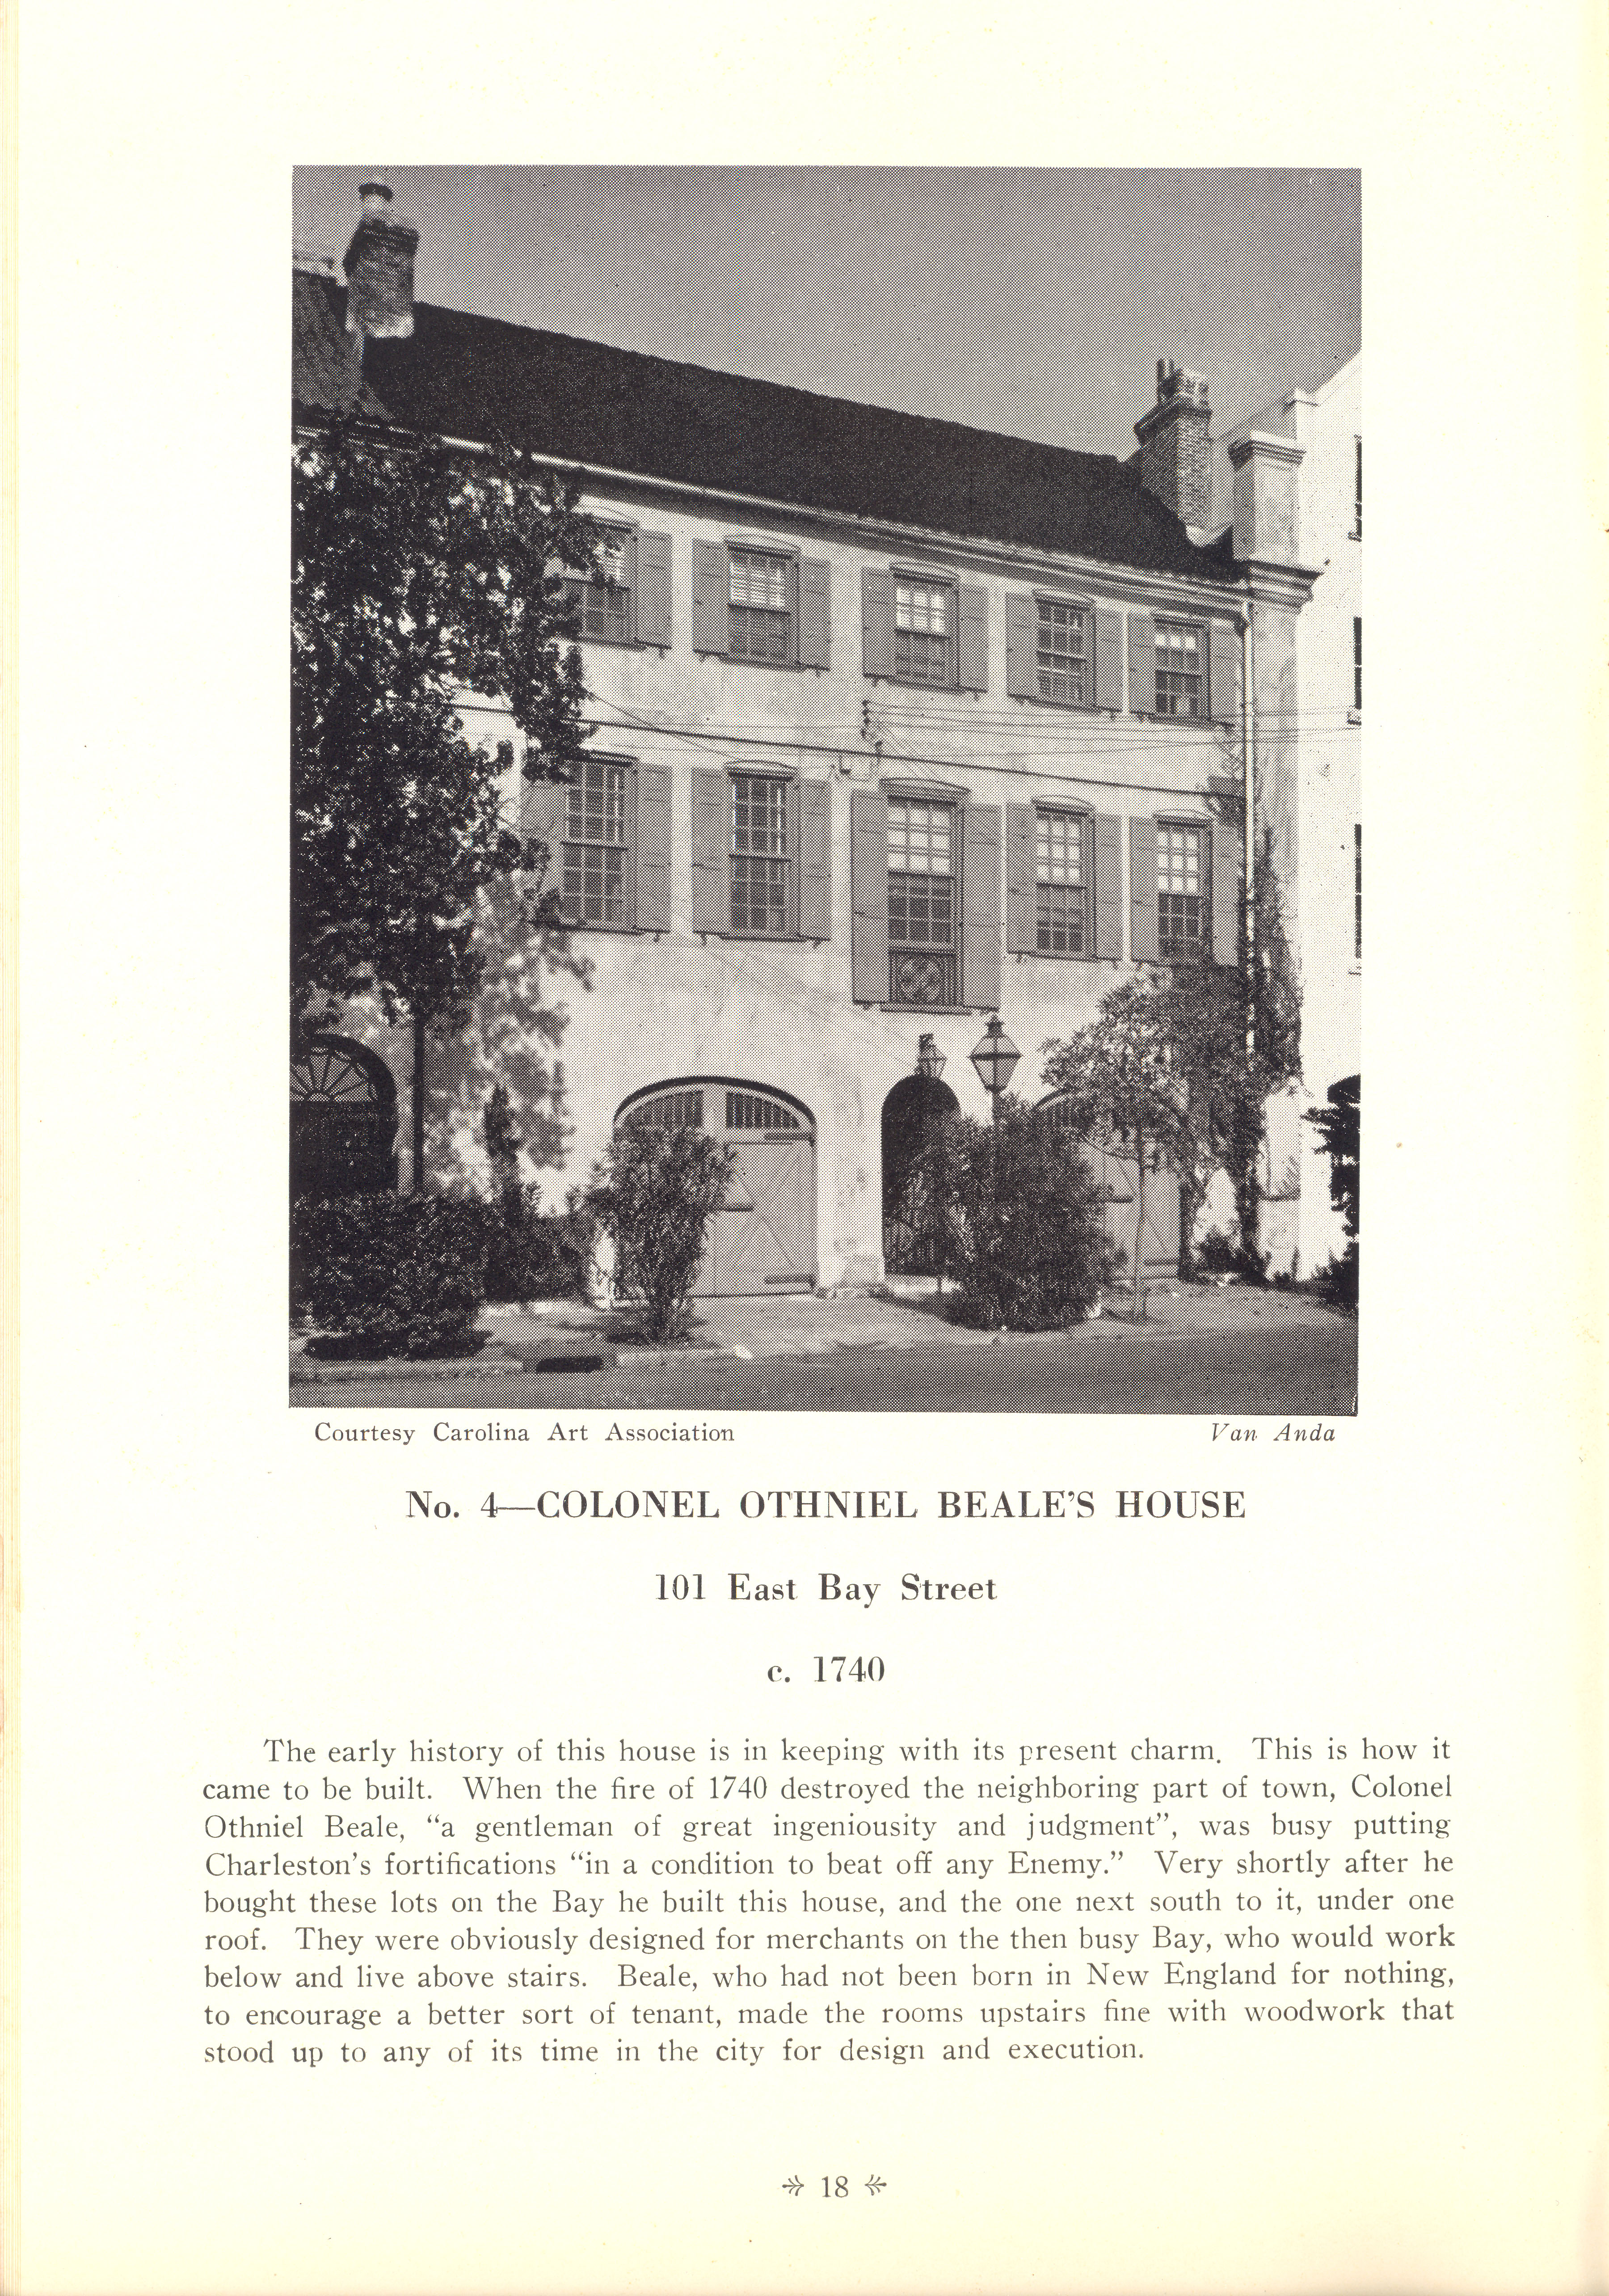 Page 18:  No. 4 - Colonel Othniel Beale's House, 101 East Bay Street, c. 1740